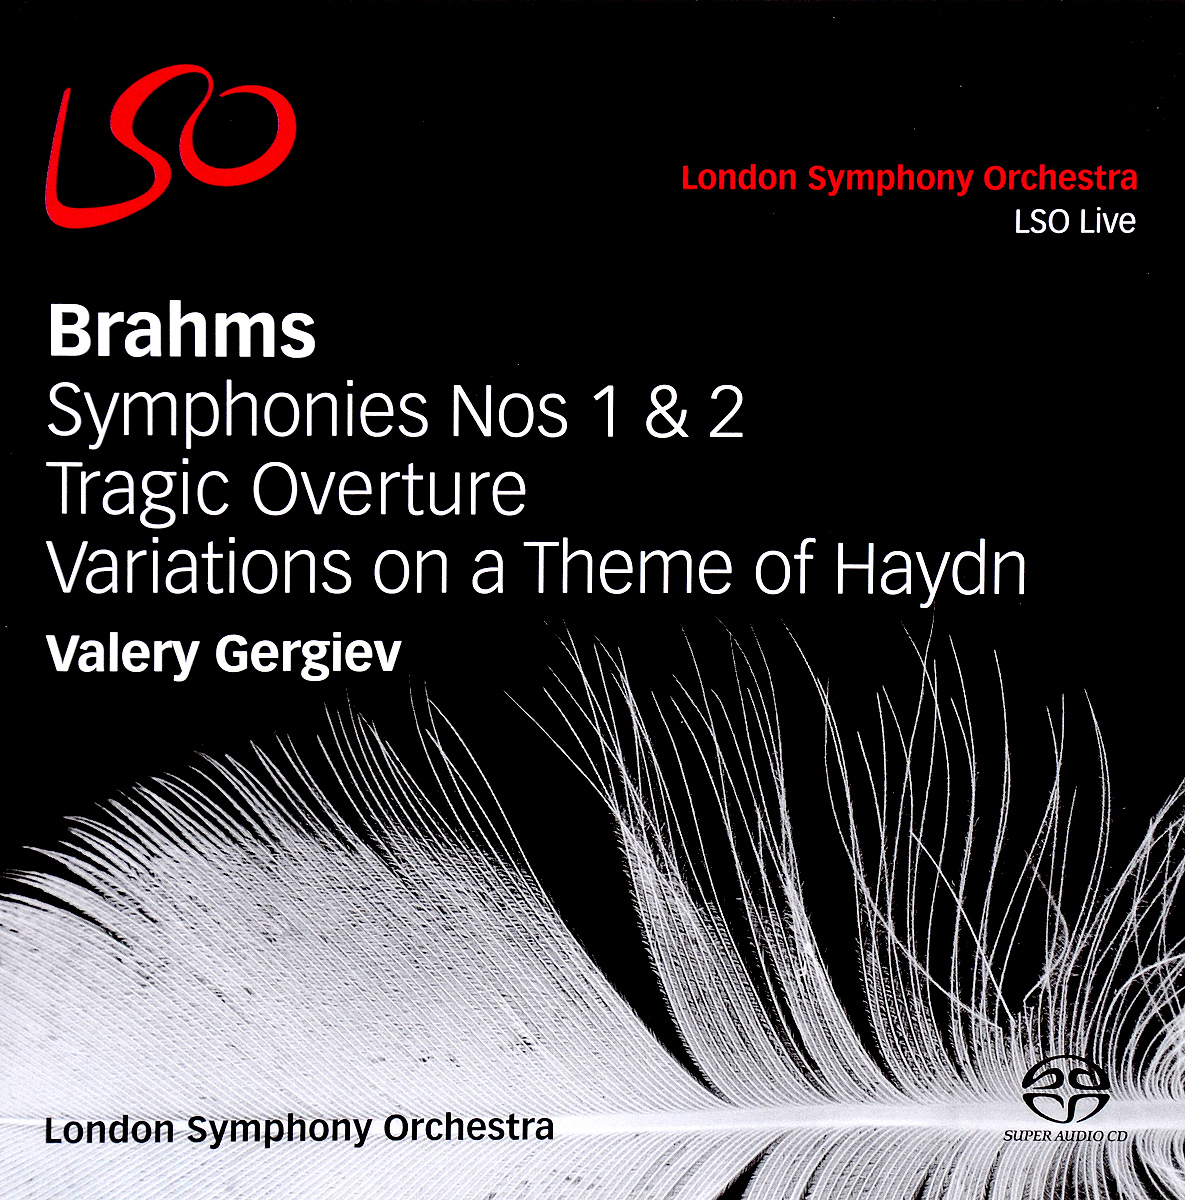 Фото - Valery Gergiev. Brahms. Sinfonien 1 & 2 / Tragische Ouverture. Variations On A Theme Haydn (2 CD) cafe london 2 cd